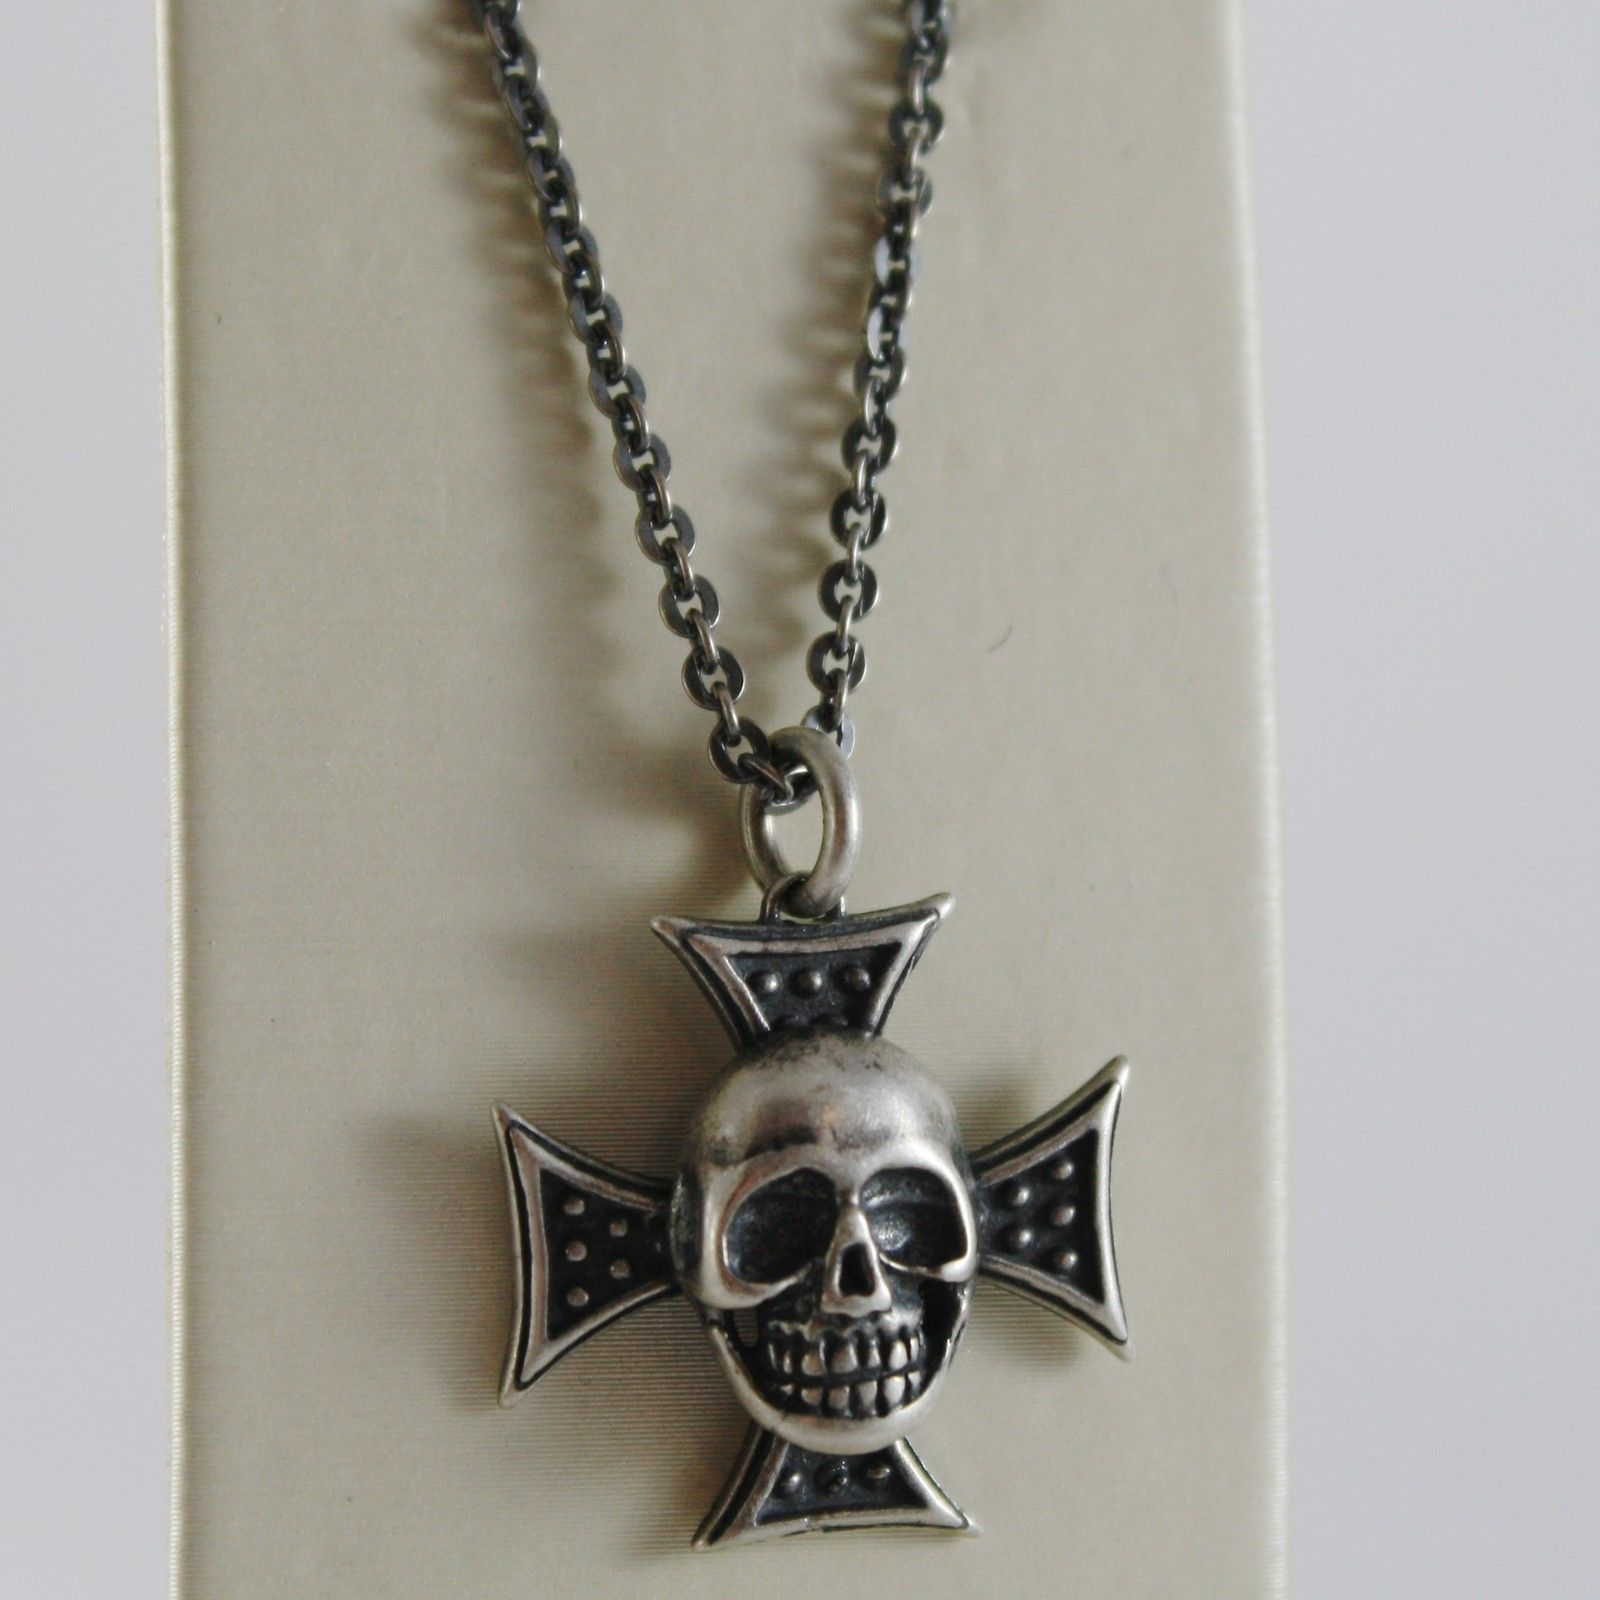 925 BURNISHED SILVER NECKLACE PIRATES SKULL WITH CROSS PENDANT MADE IN ITALY